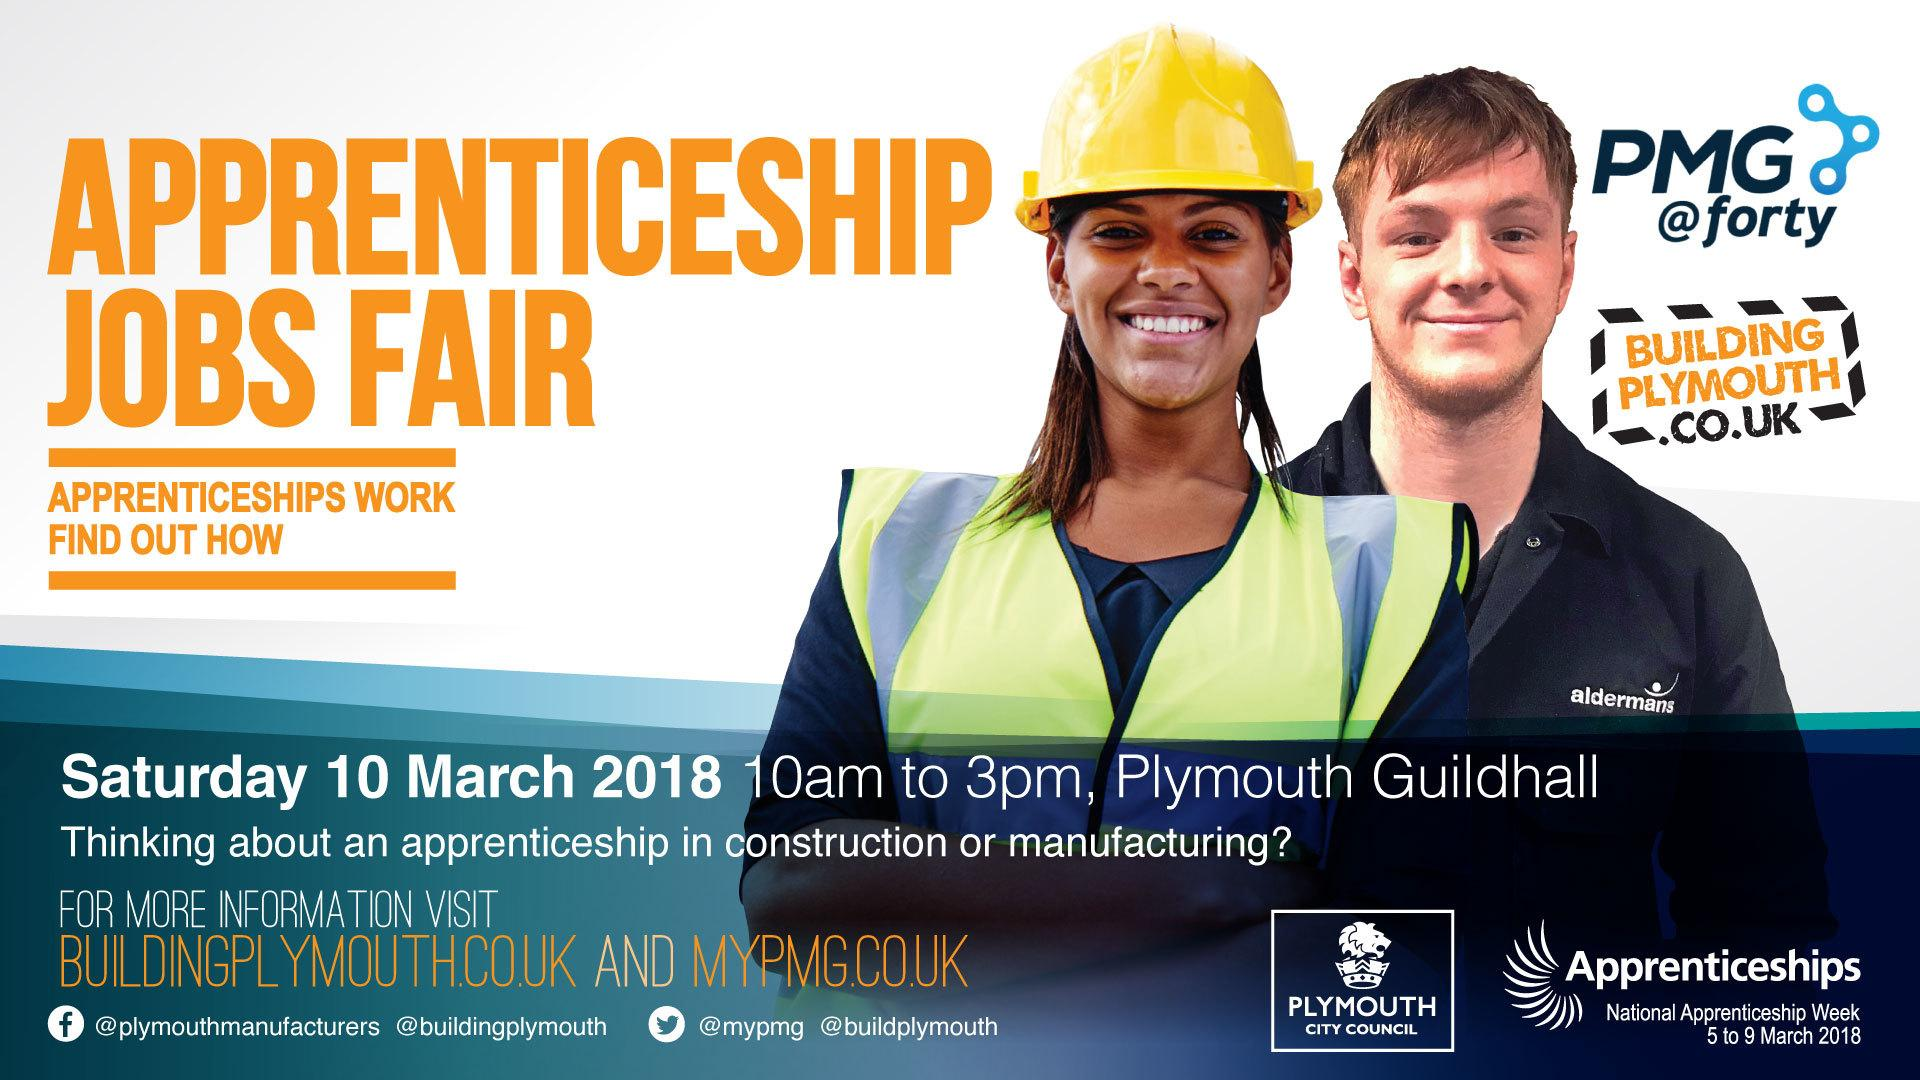 Apprenticeship Job Building Plymouth Apprenticeships Work Build Your Career In